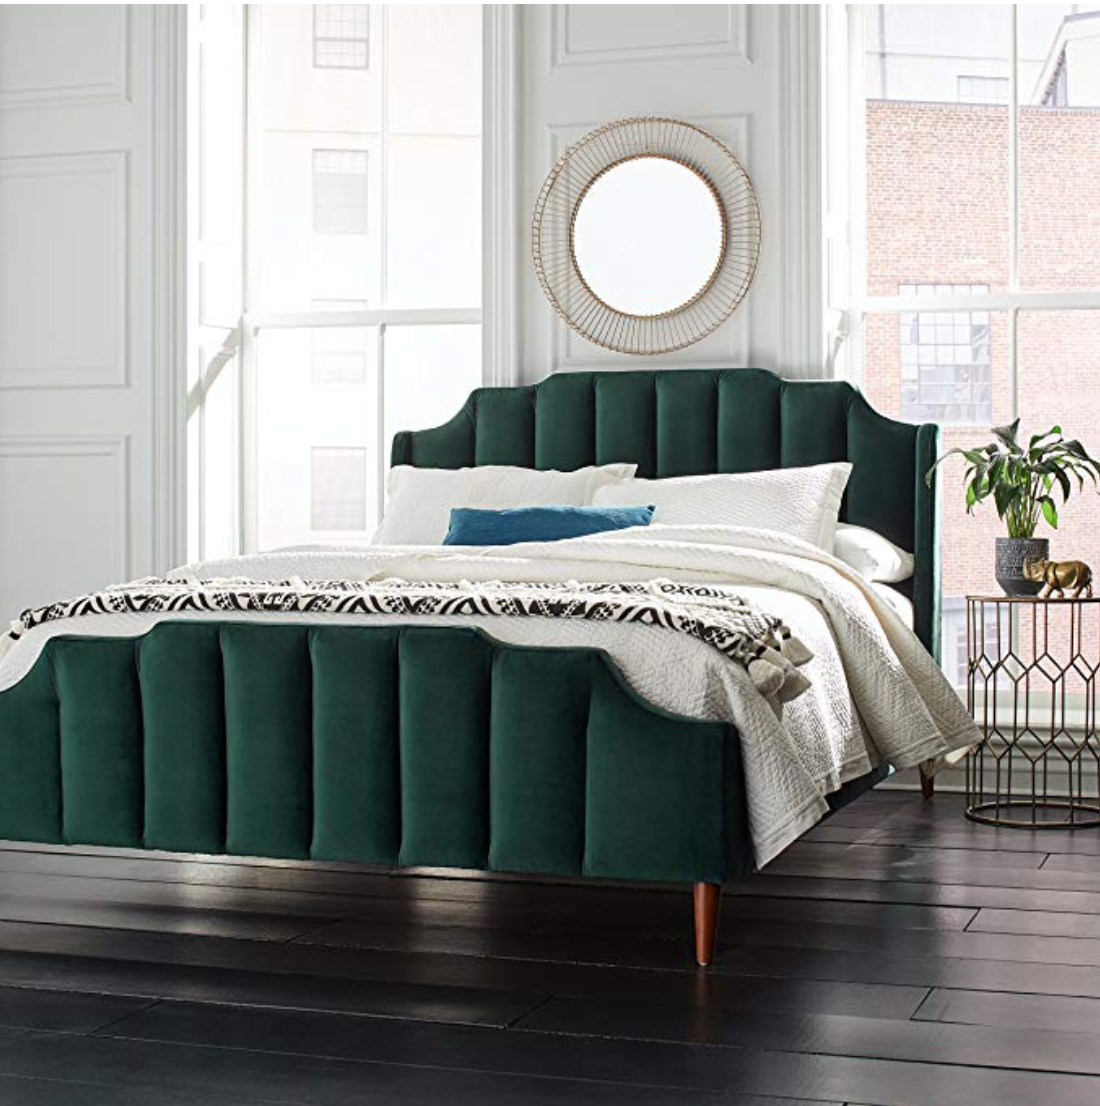 Emerald Green Velvet Bed With Black And White Textured Bedding And